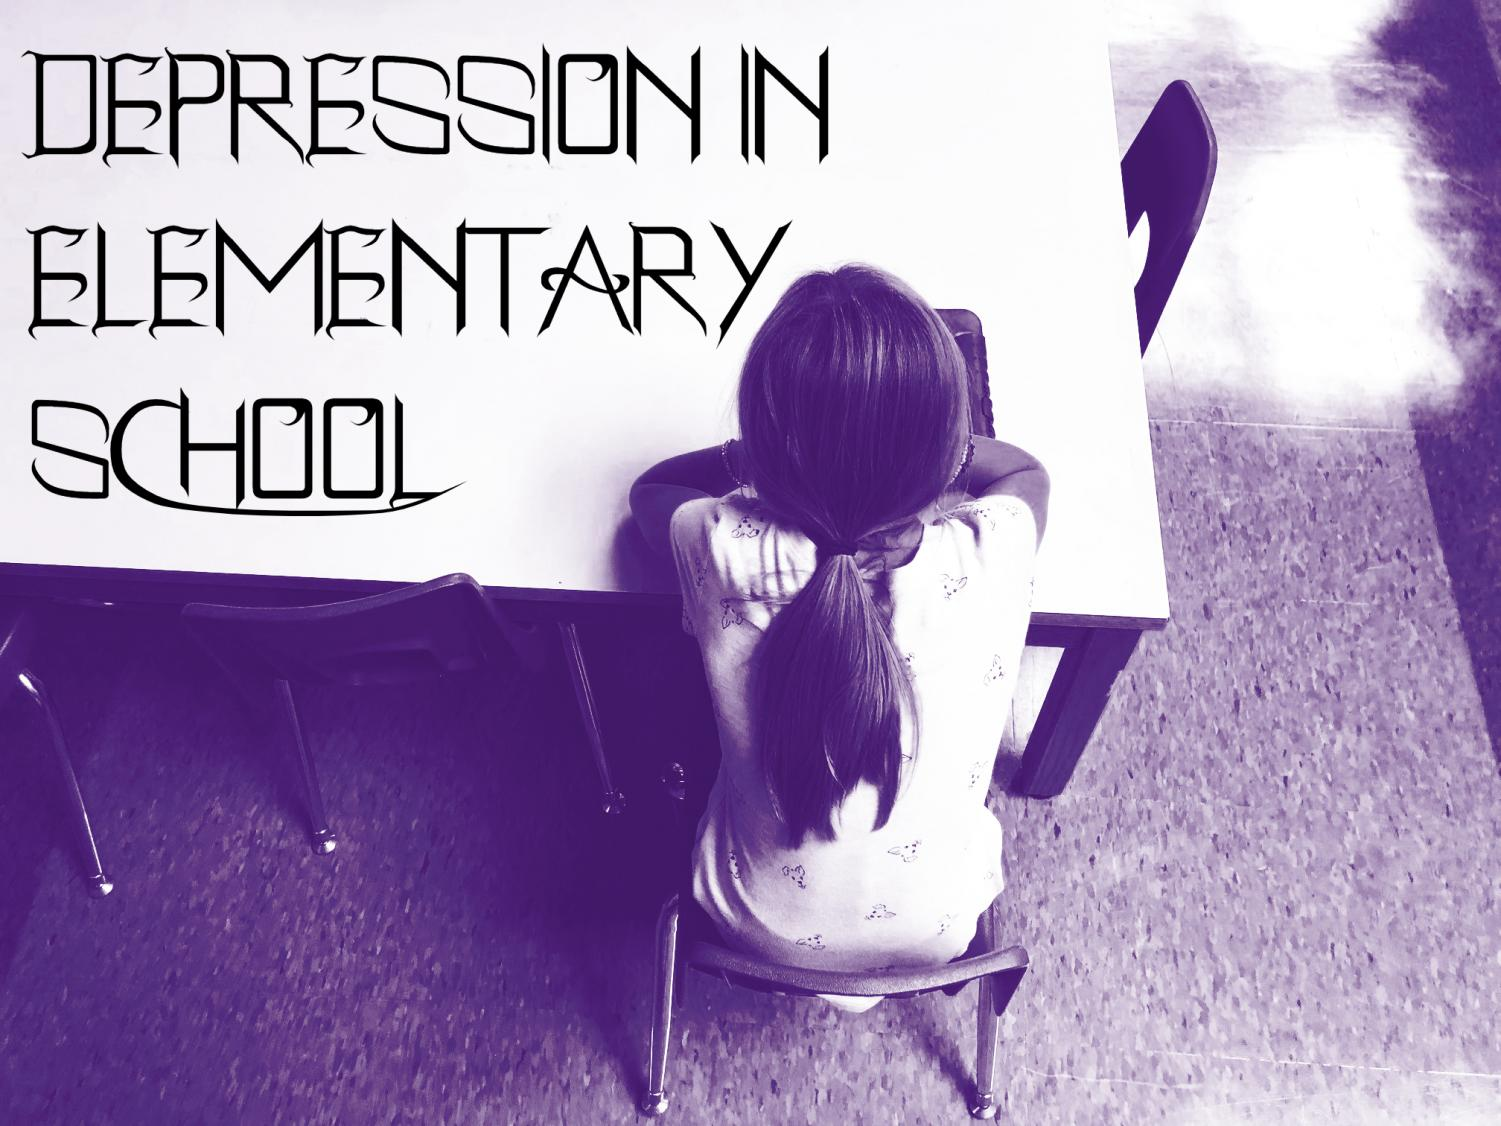 More and more elementary aged students are showing signs of depression.